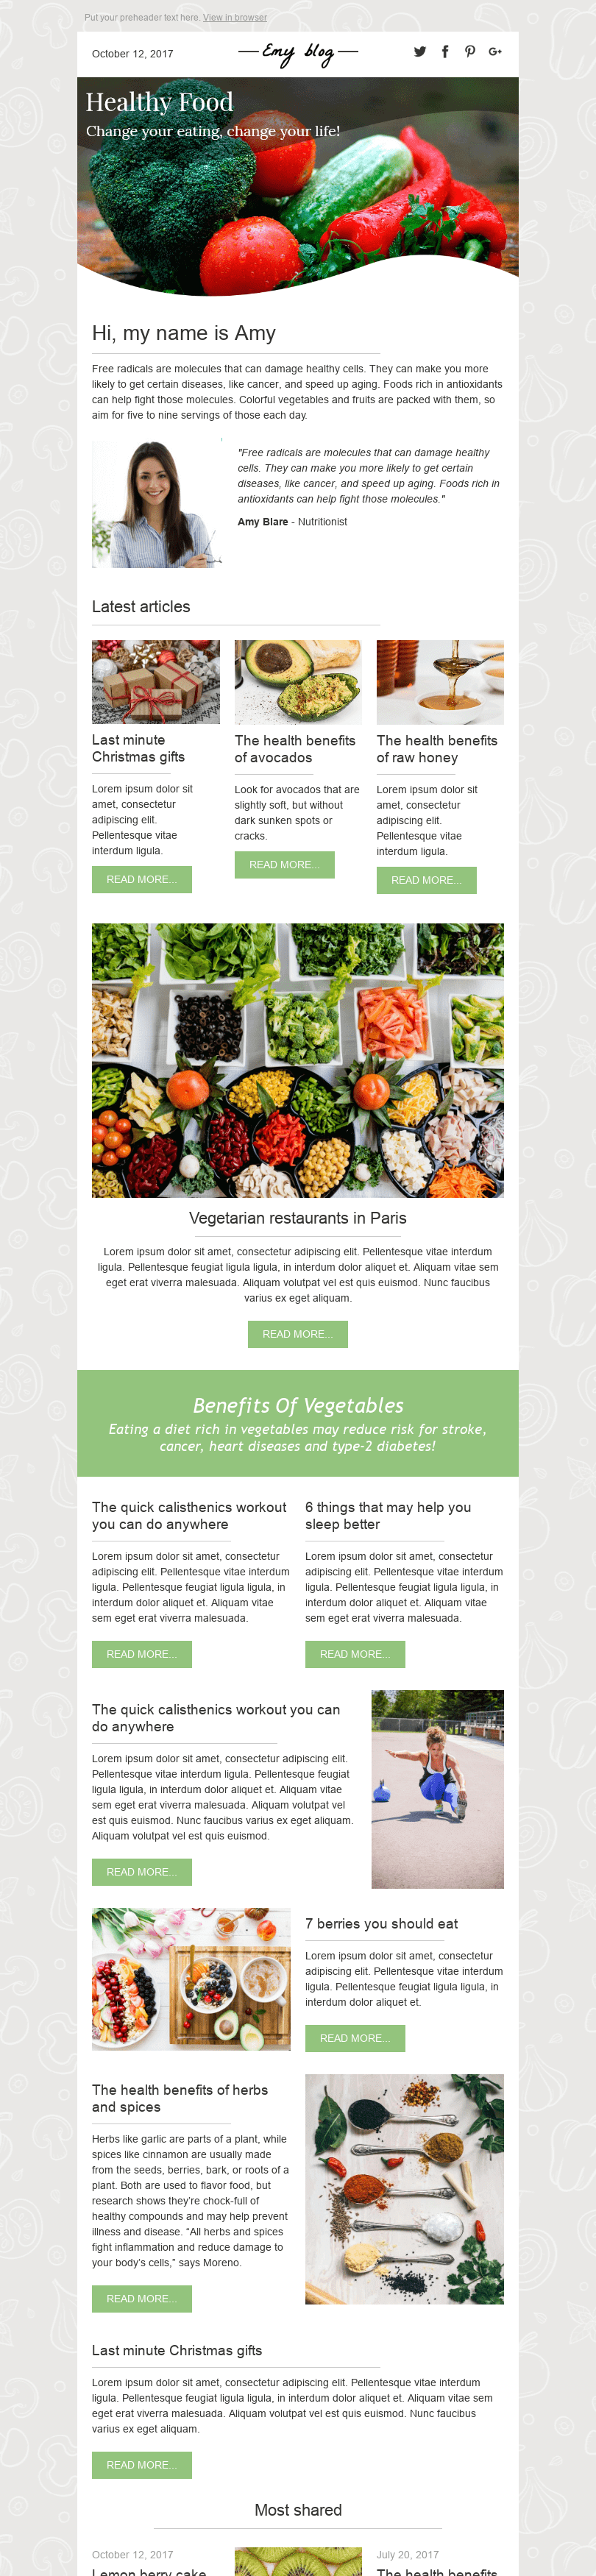 Stripo Publications Blog Promo newsletter Healthy Foods email web